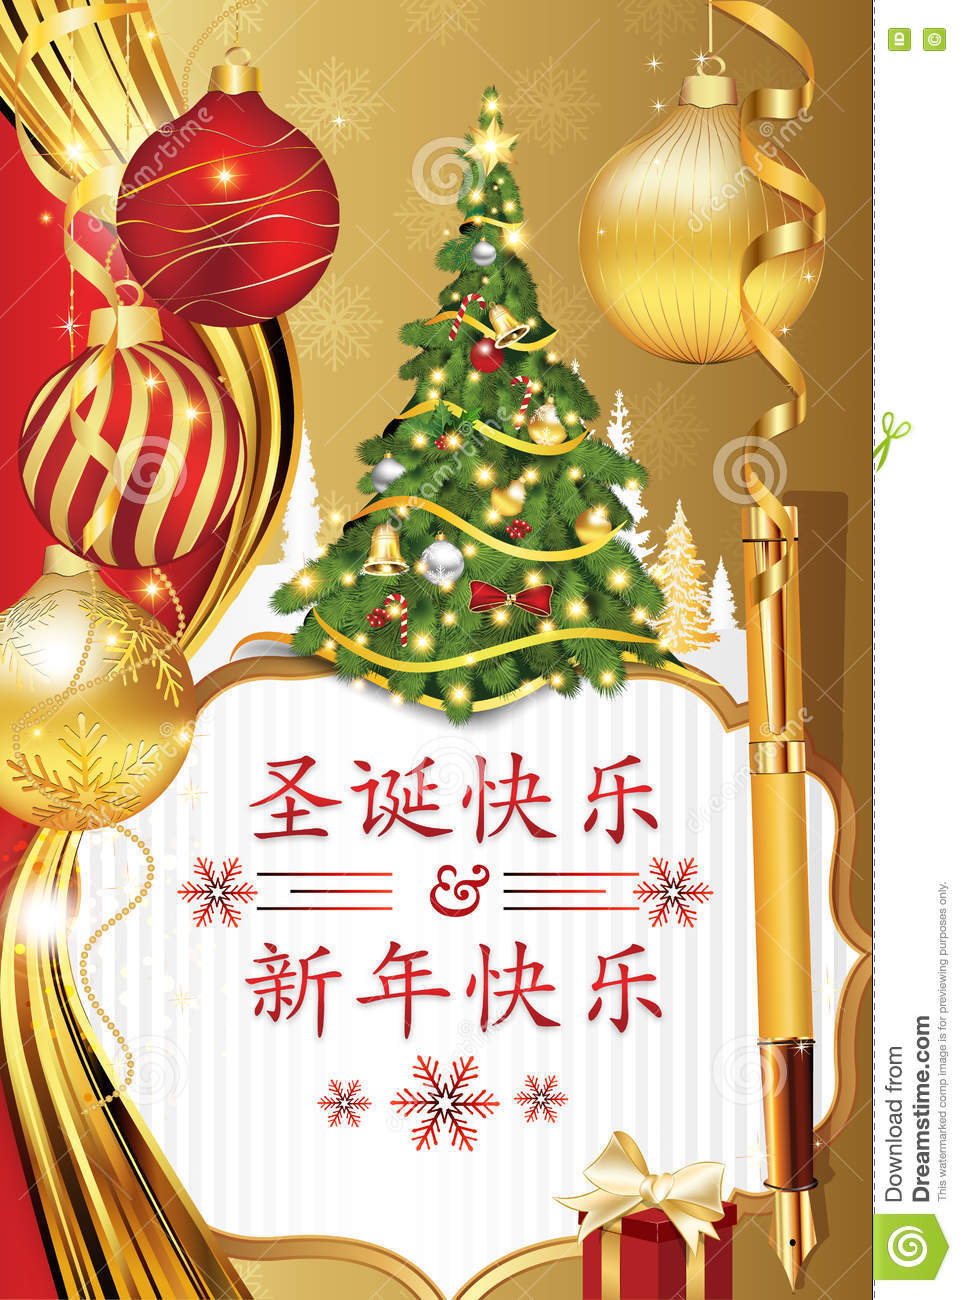 Business Chinese Greeting Card For Christmas And New Year In Chinese